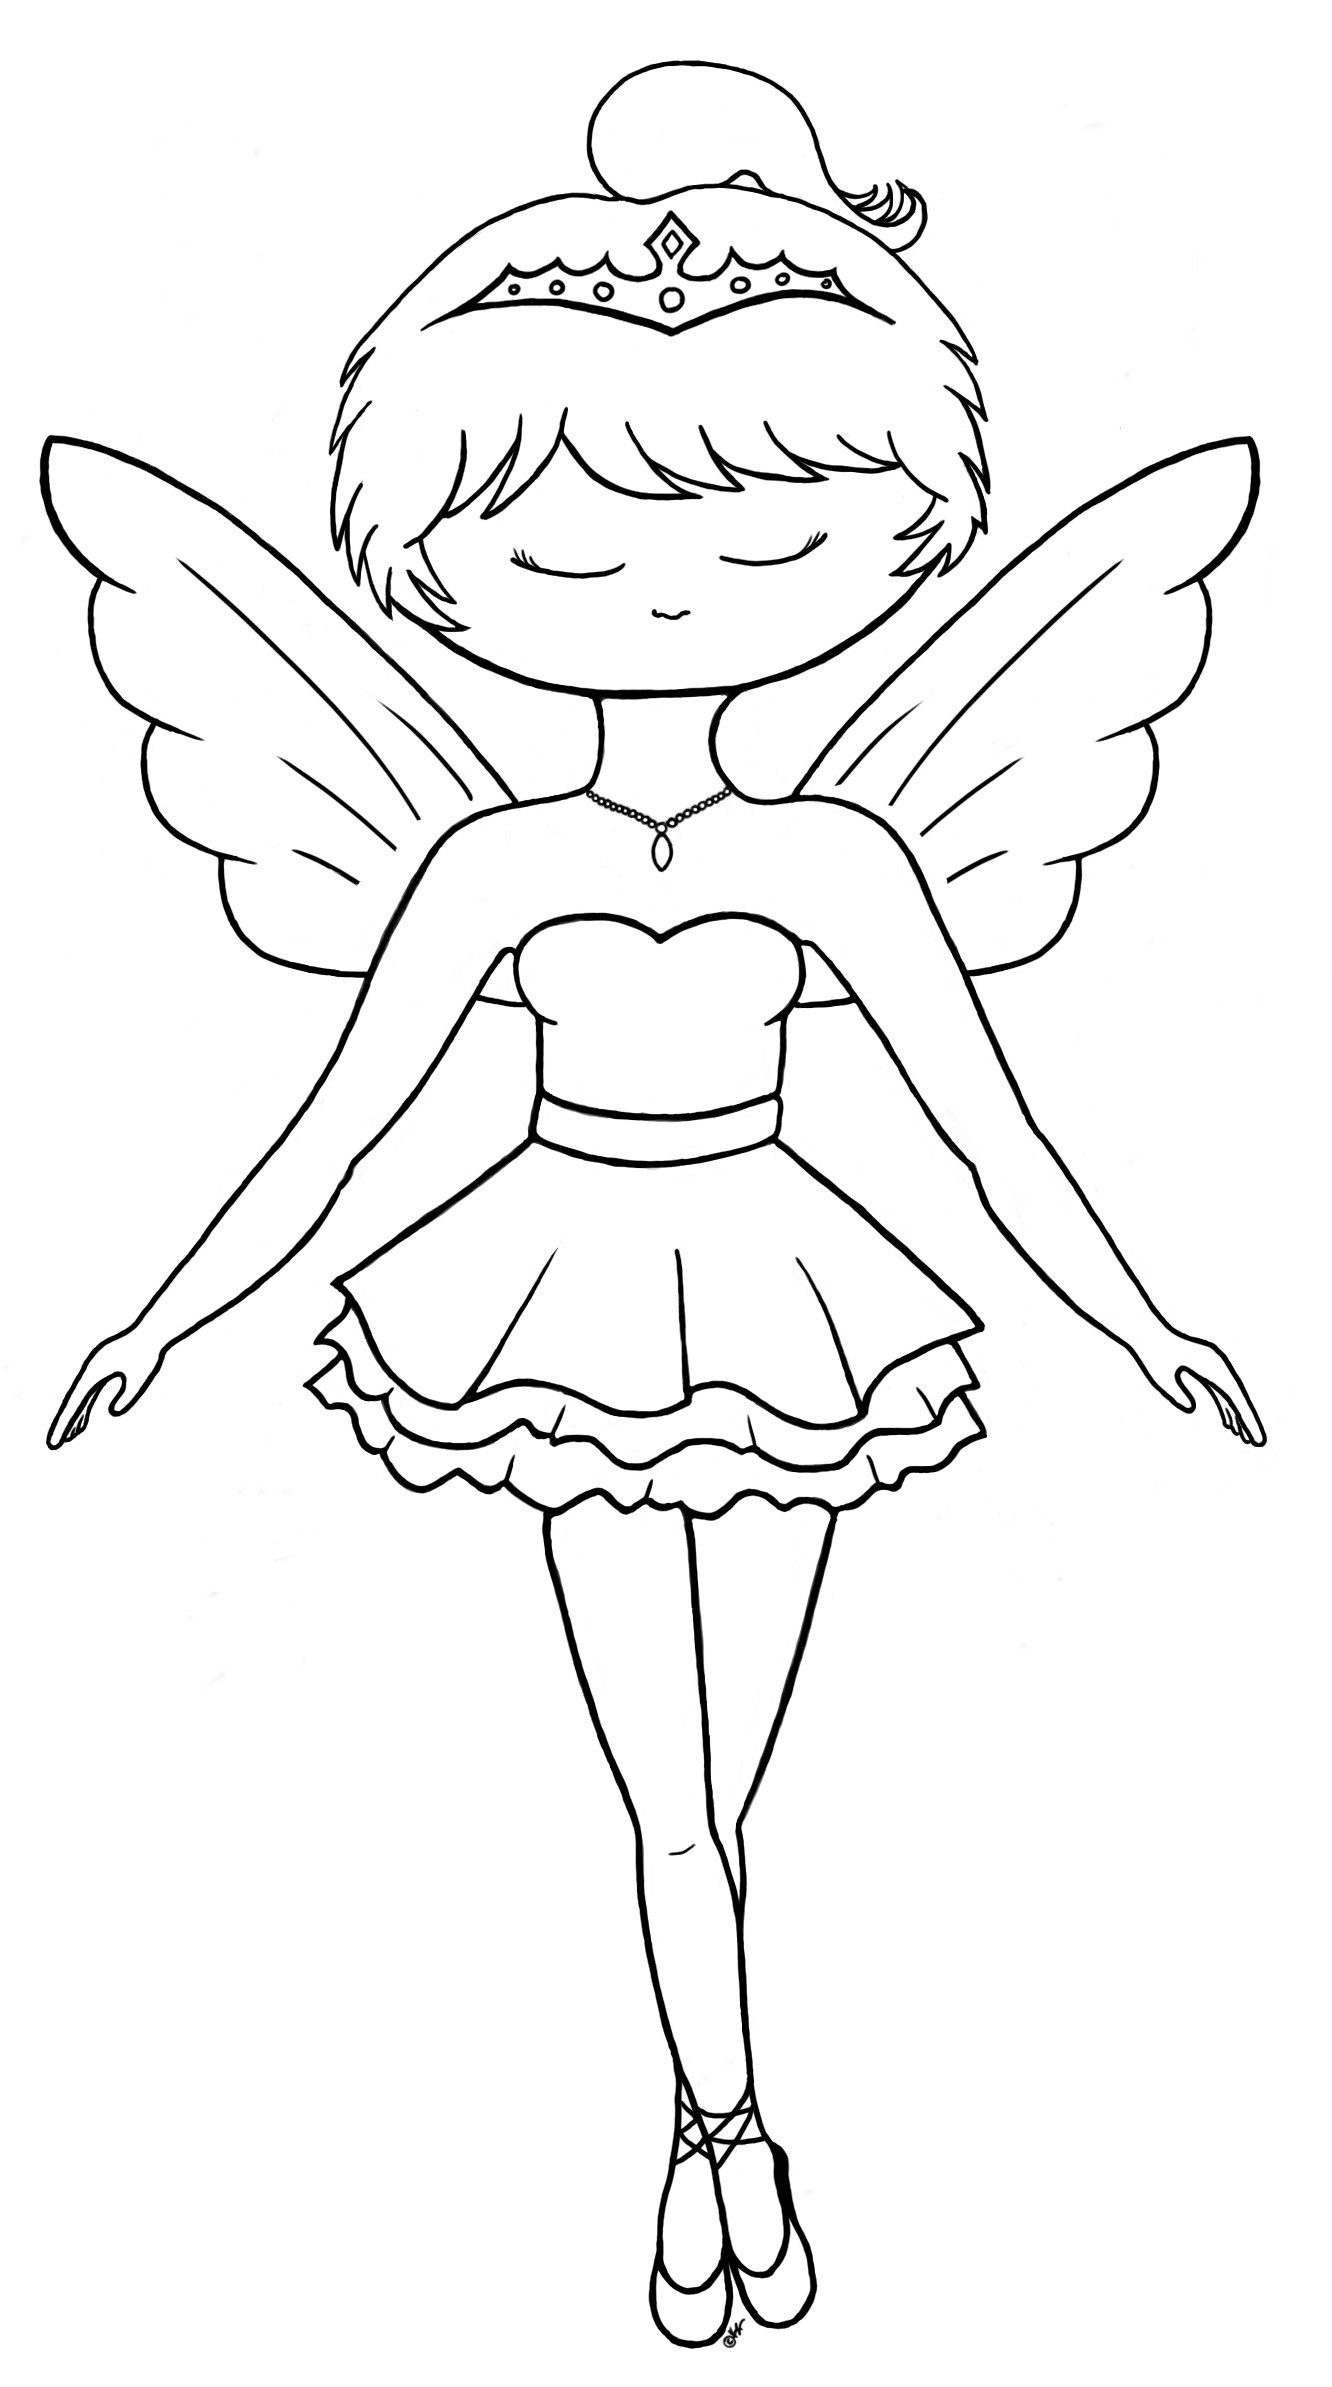 Ballarina Coloring Pages  Ballerina Coloring Pages for childrens printable for free